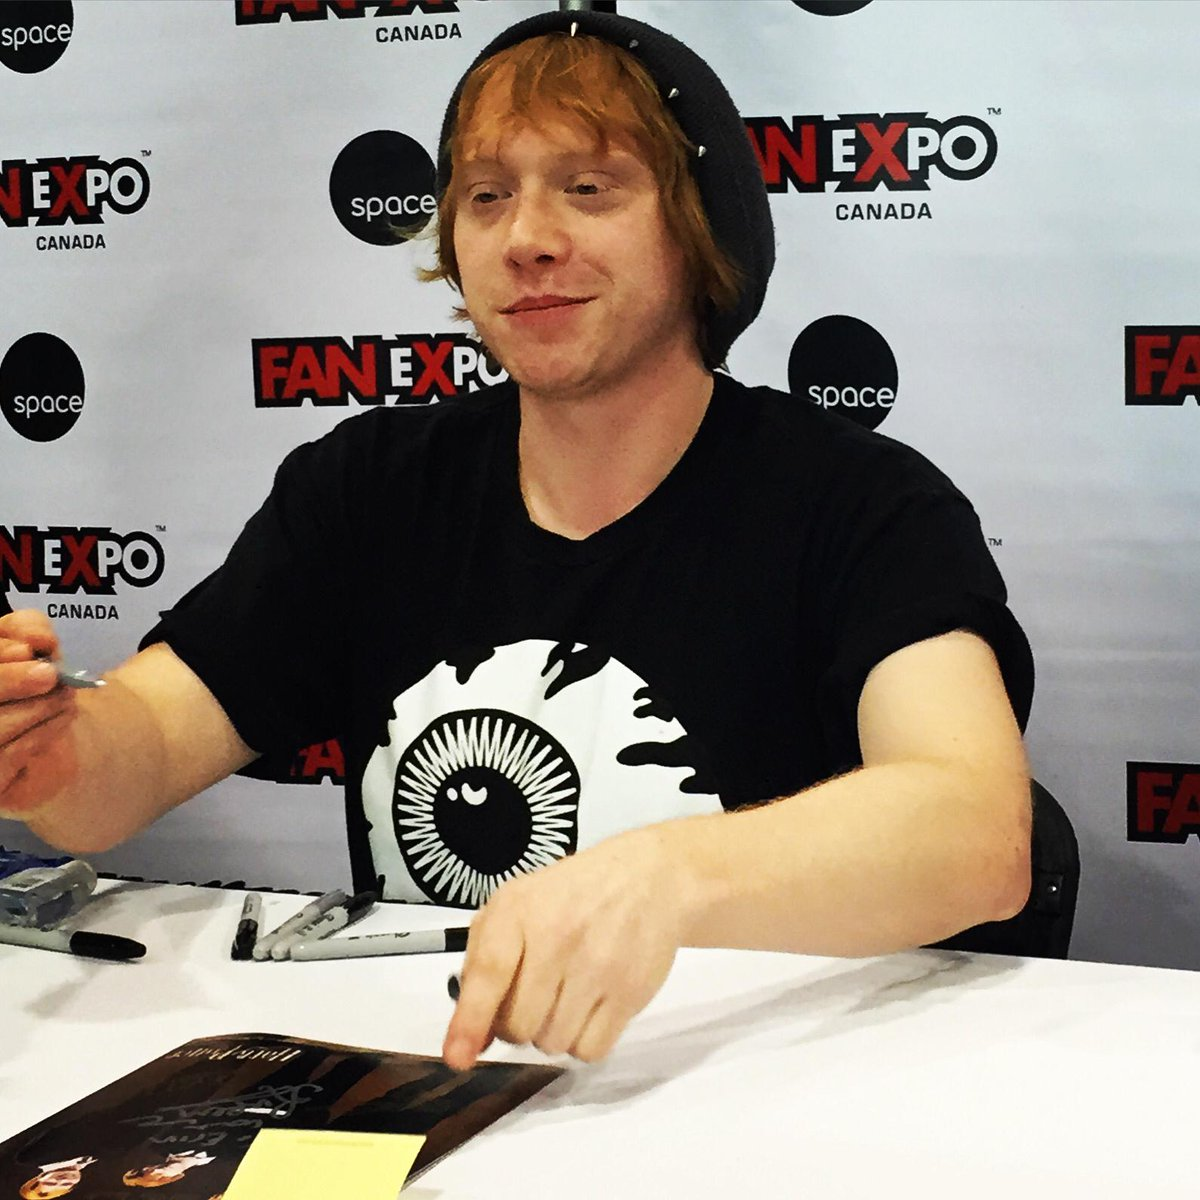 Ron Weasley is in the #FanExpoCan house!! http://t.co/3VxBWoSYGh